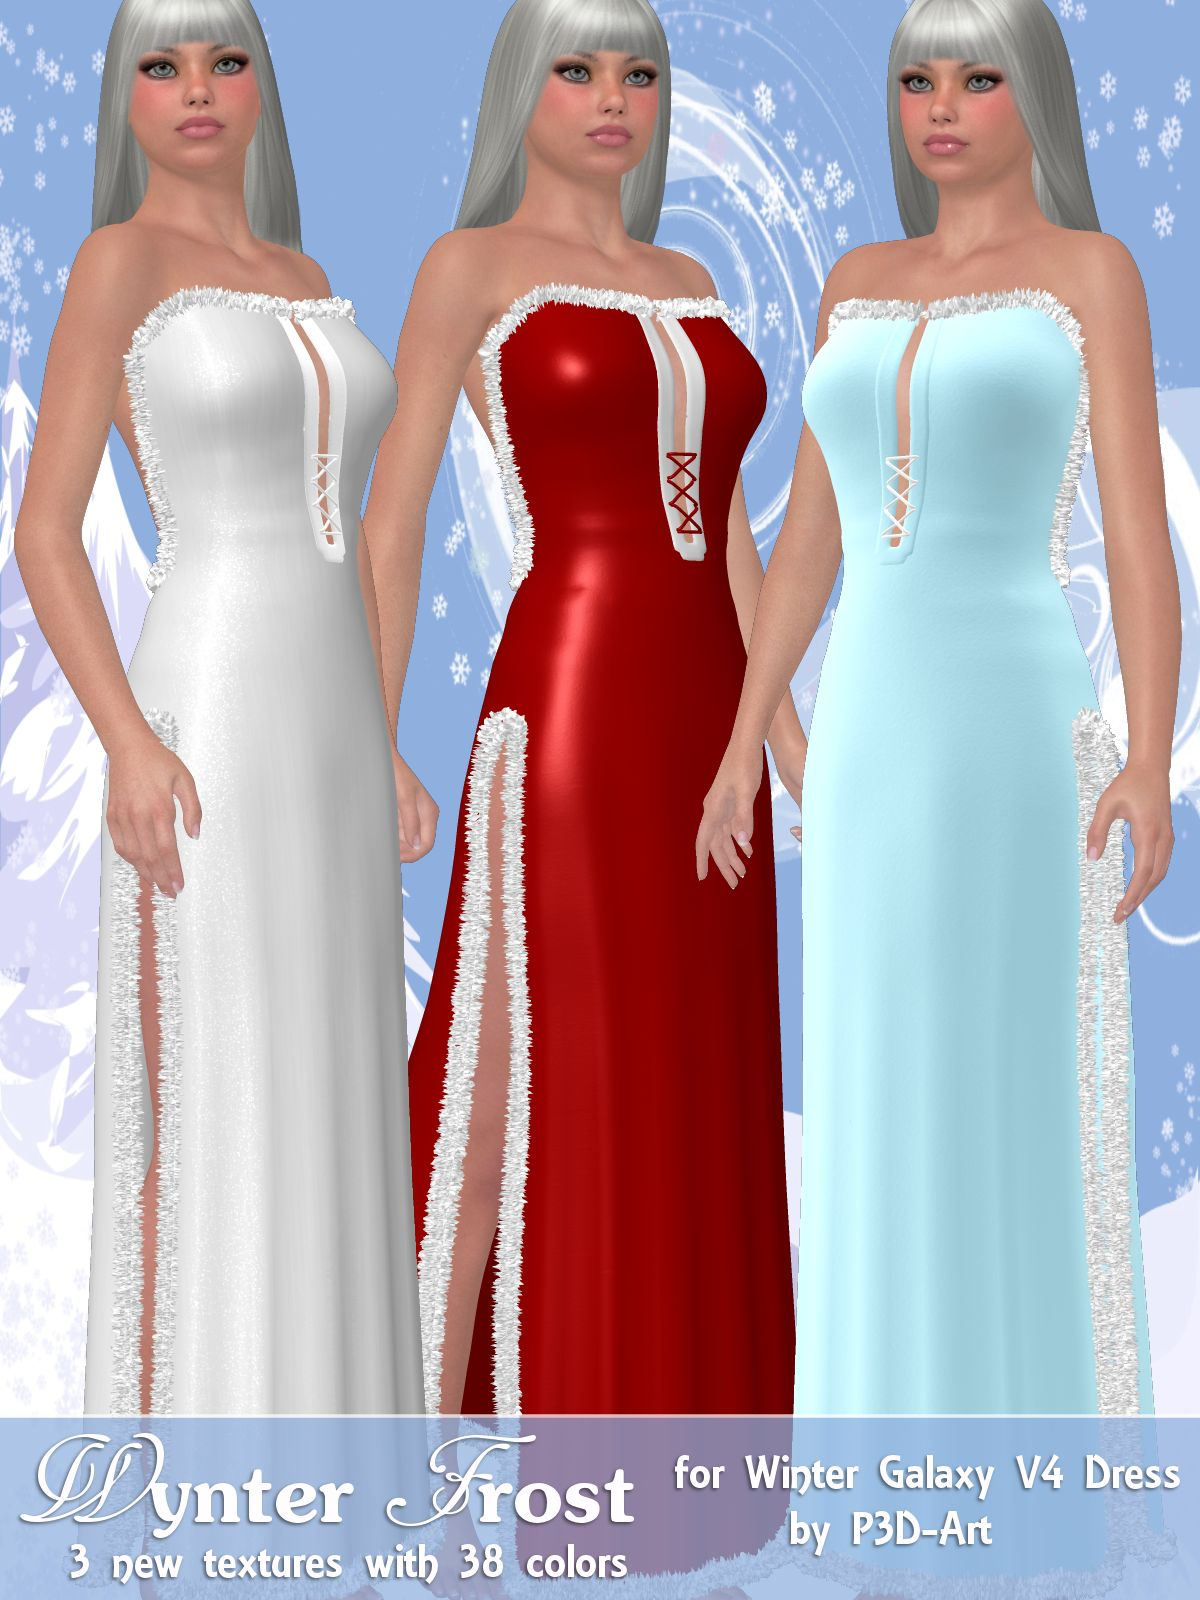 Wynter Frost for Winter Galaxy V4 Dress by ANG3L_R3D